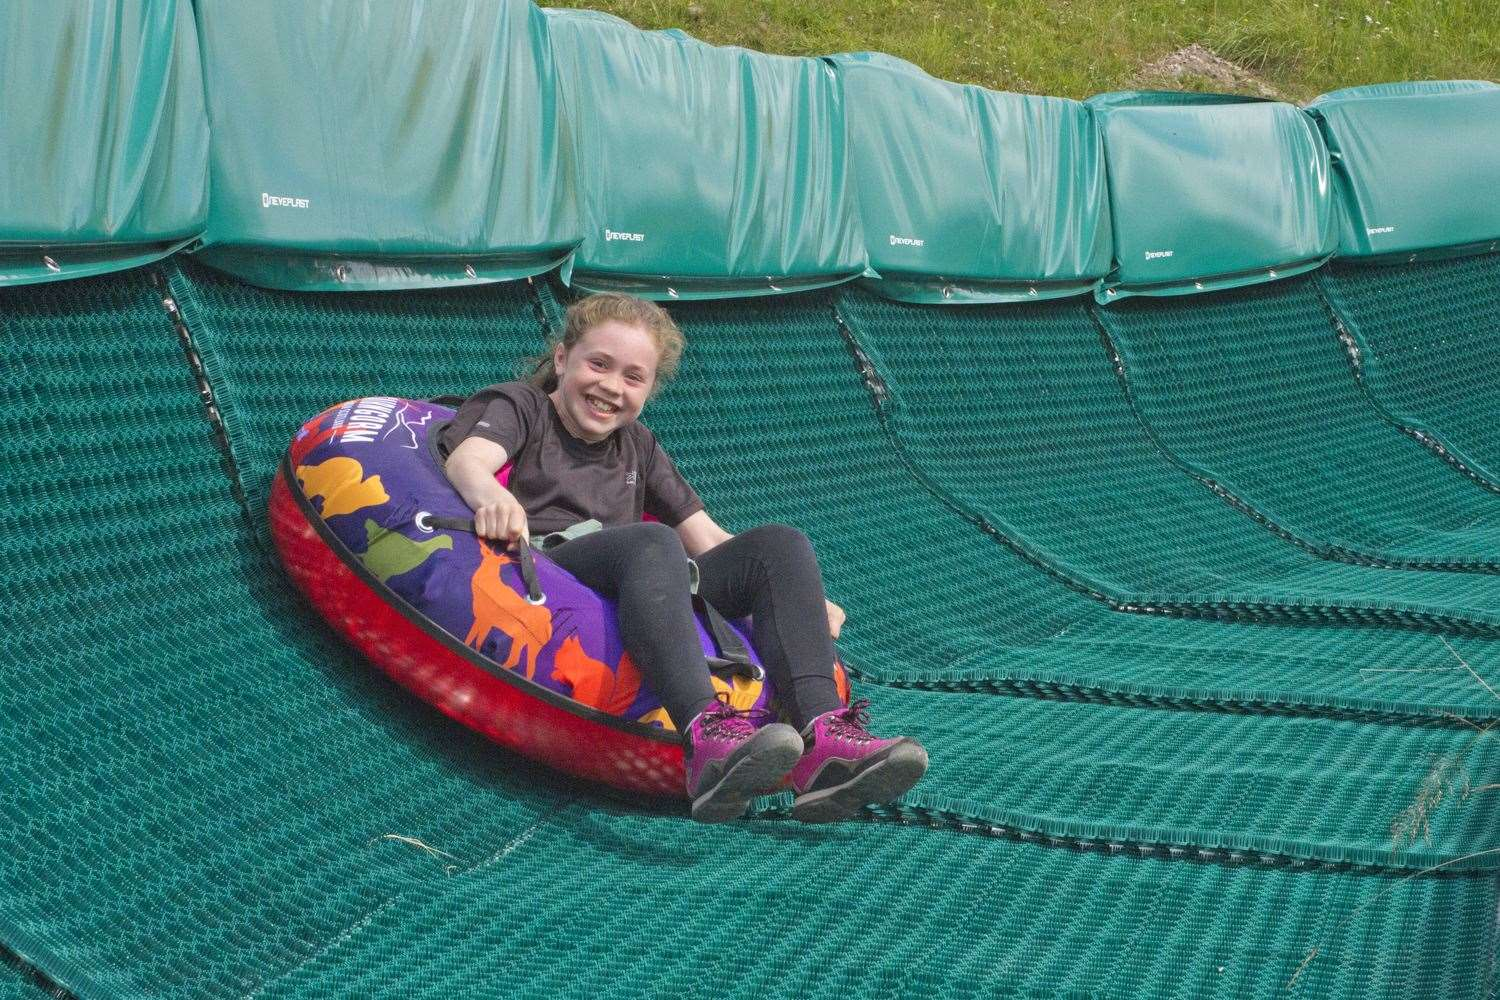 Anna Hutt was one of the very first people to try out the new attraction at Cairngorm Mountain.